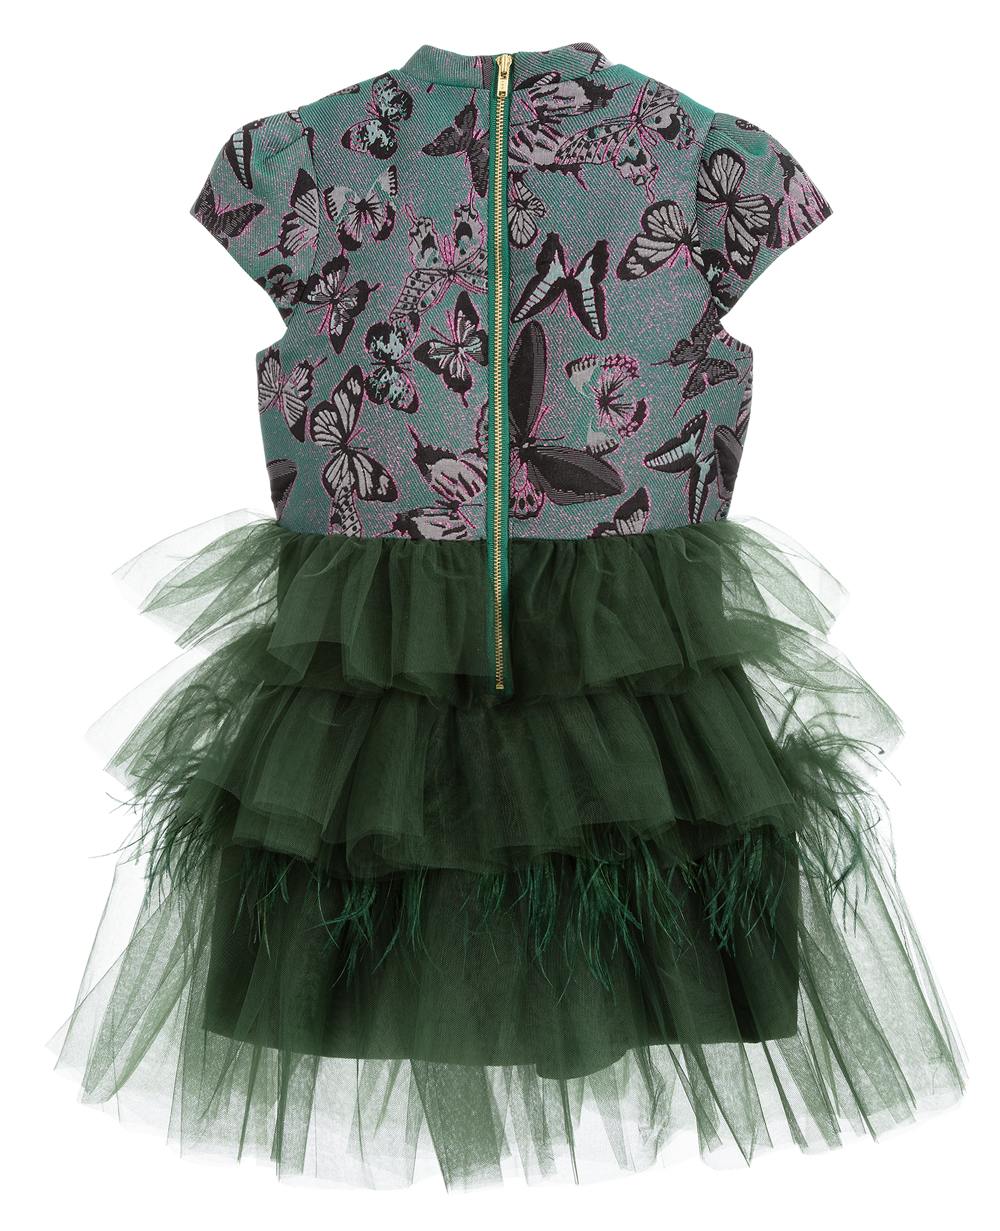 Emerald Green Brocade Tulle Dress Jacquard Dress